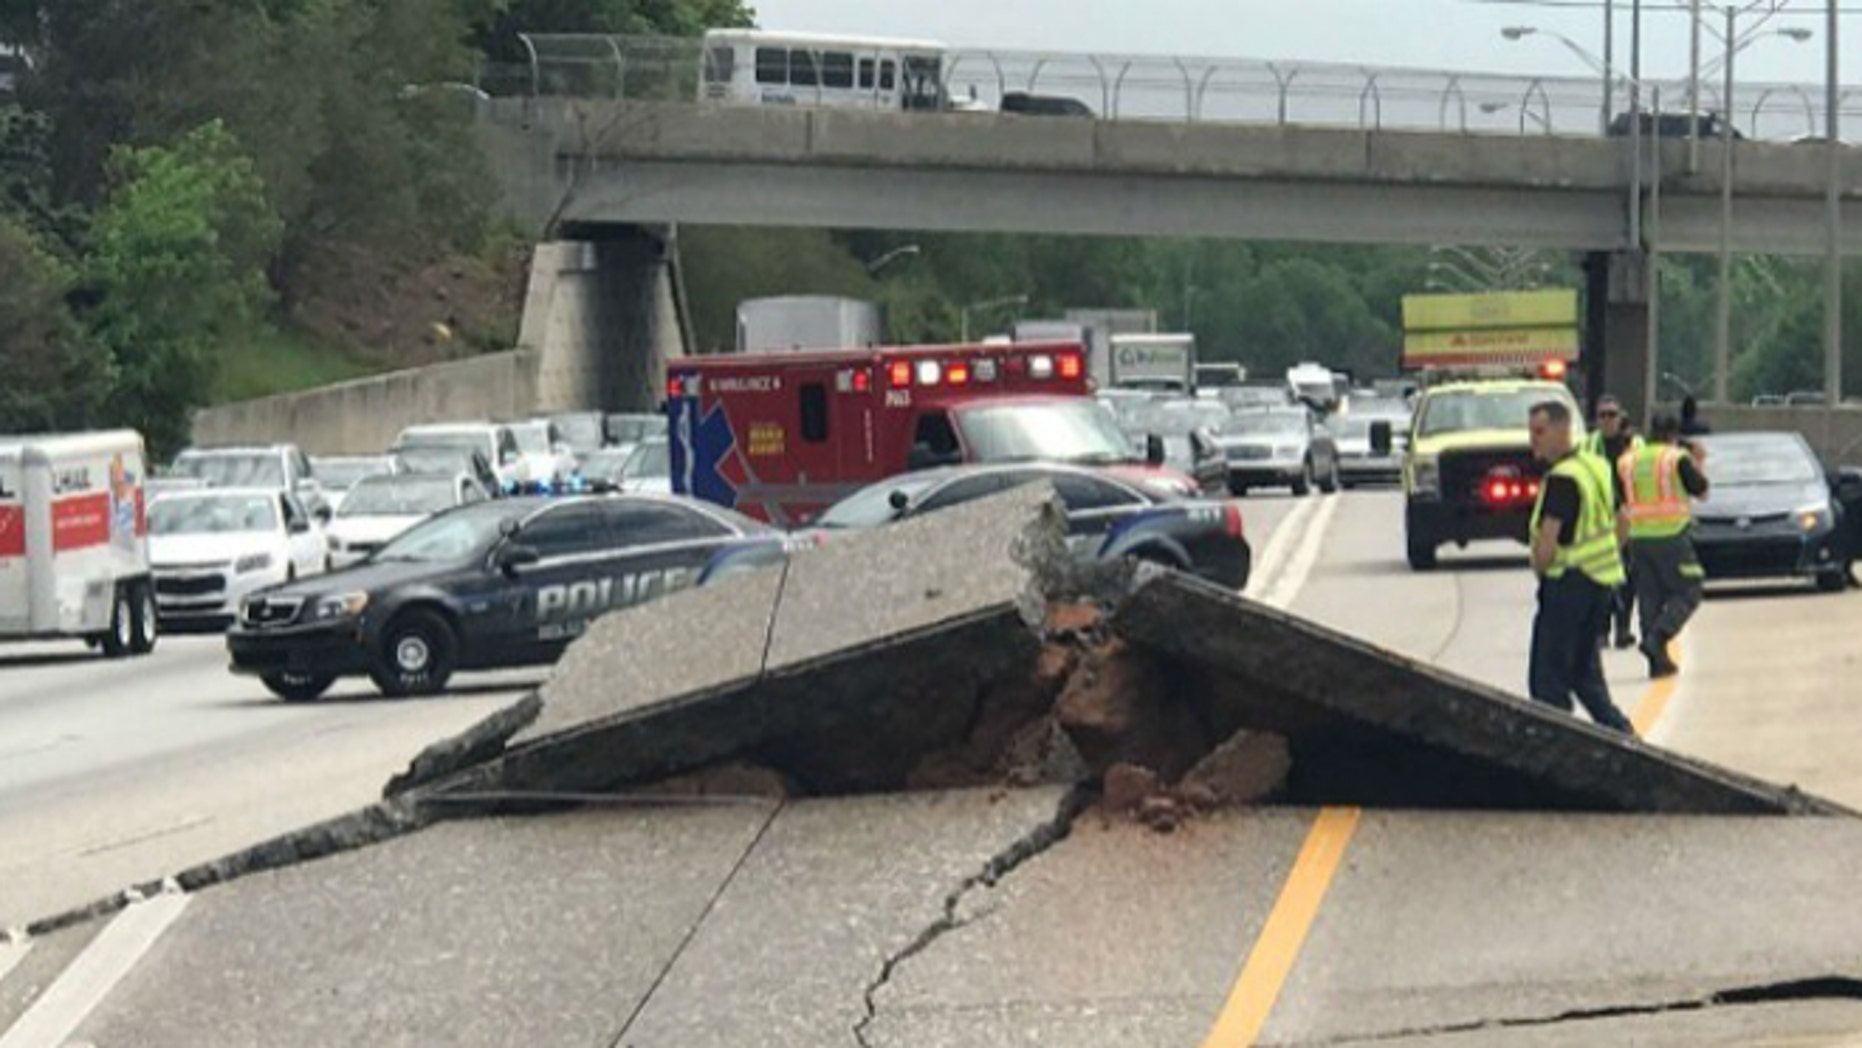 A portion of I-20 is shut down after roadwork caused part of the interstate to buckle.